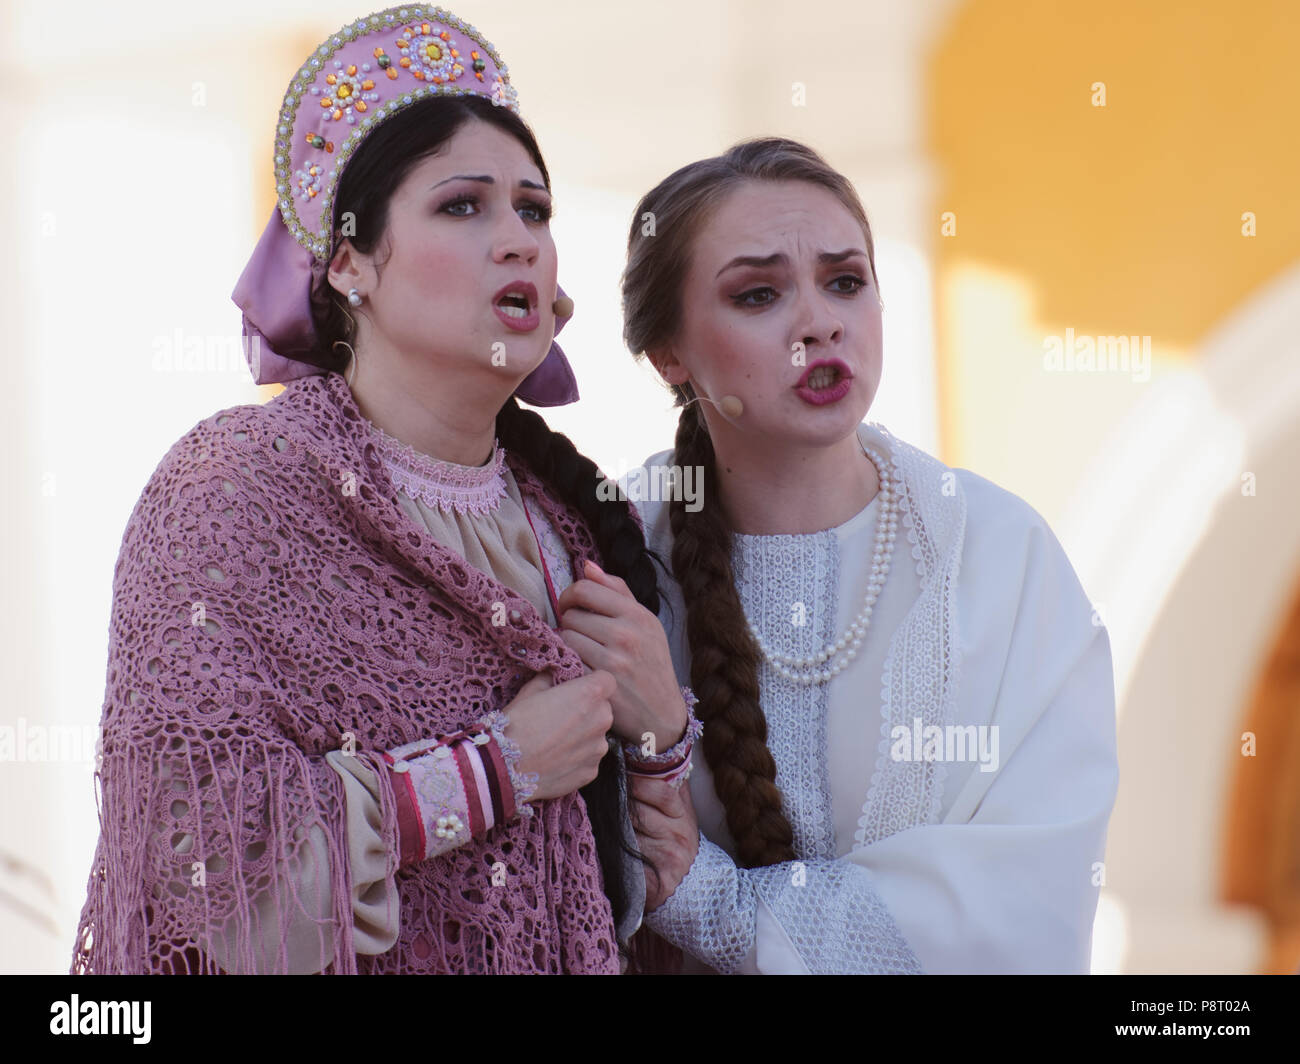 St. Petersburg, Russia - July 12, 2018: Olga Cheremnykh as Marfa (right) and Anastasia Samarina as Dunyasha in the opera The Tsar's Bride of N. Rimsky - Stock Image